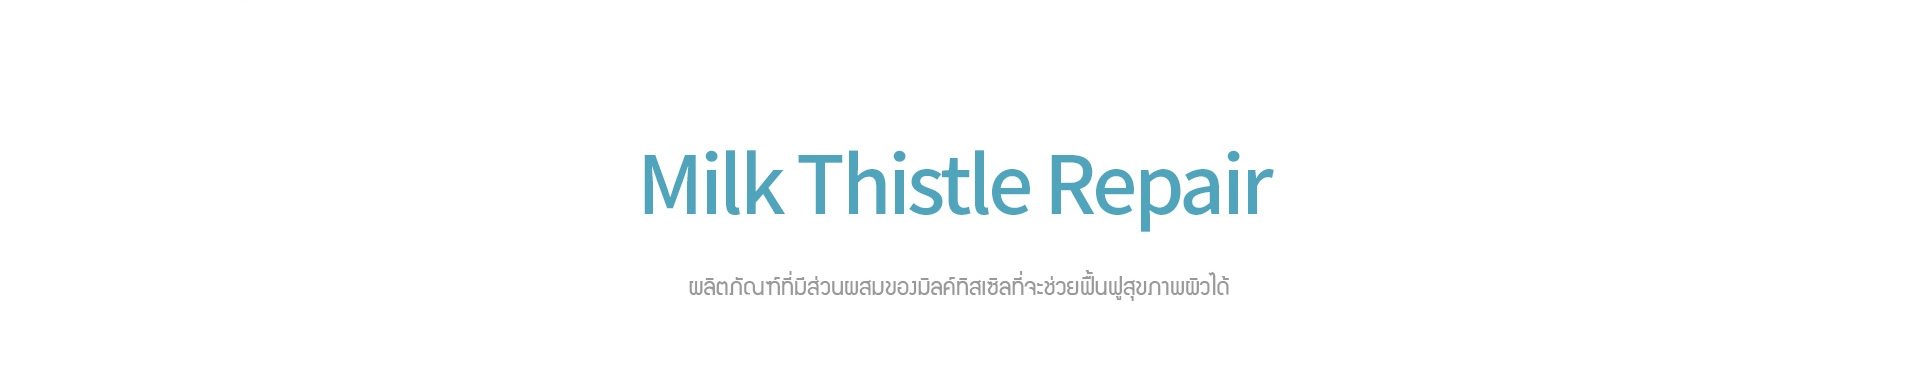 Milk Thistle Repair